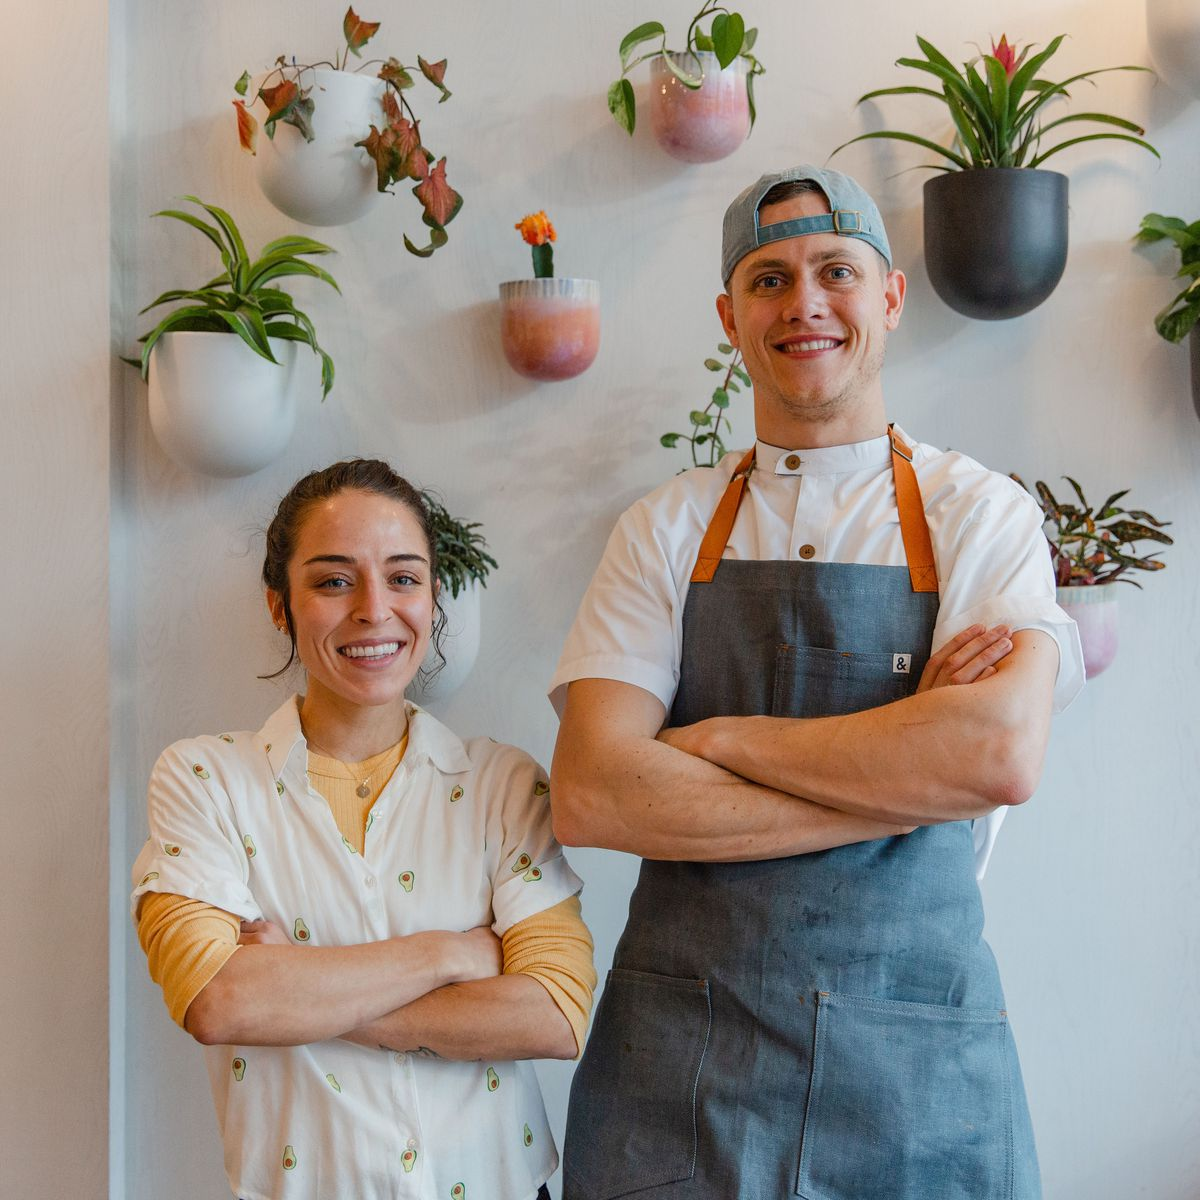 Sophia Marchese and Reid Trapani, owners of Happy Seed and La Semilla.